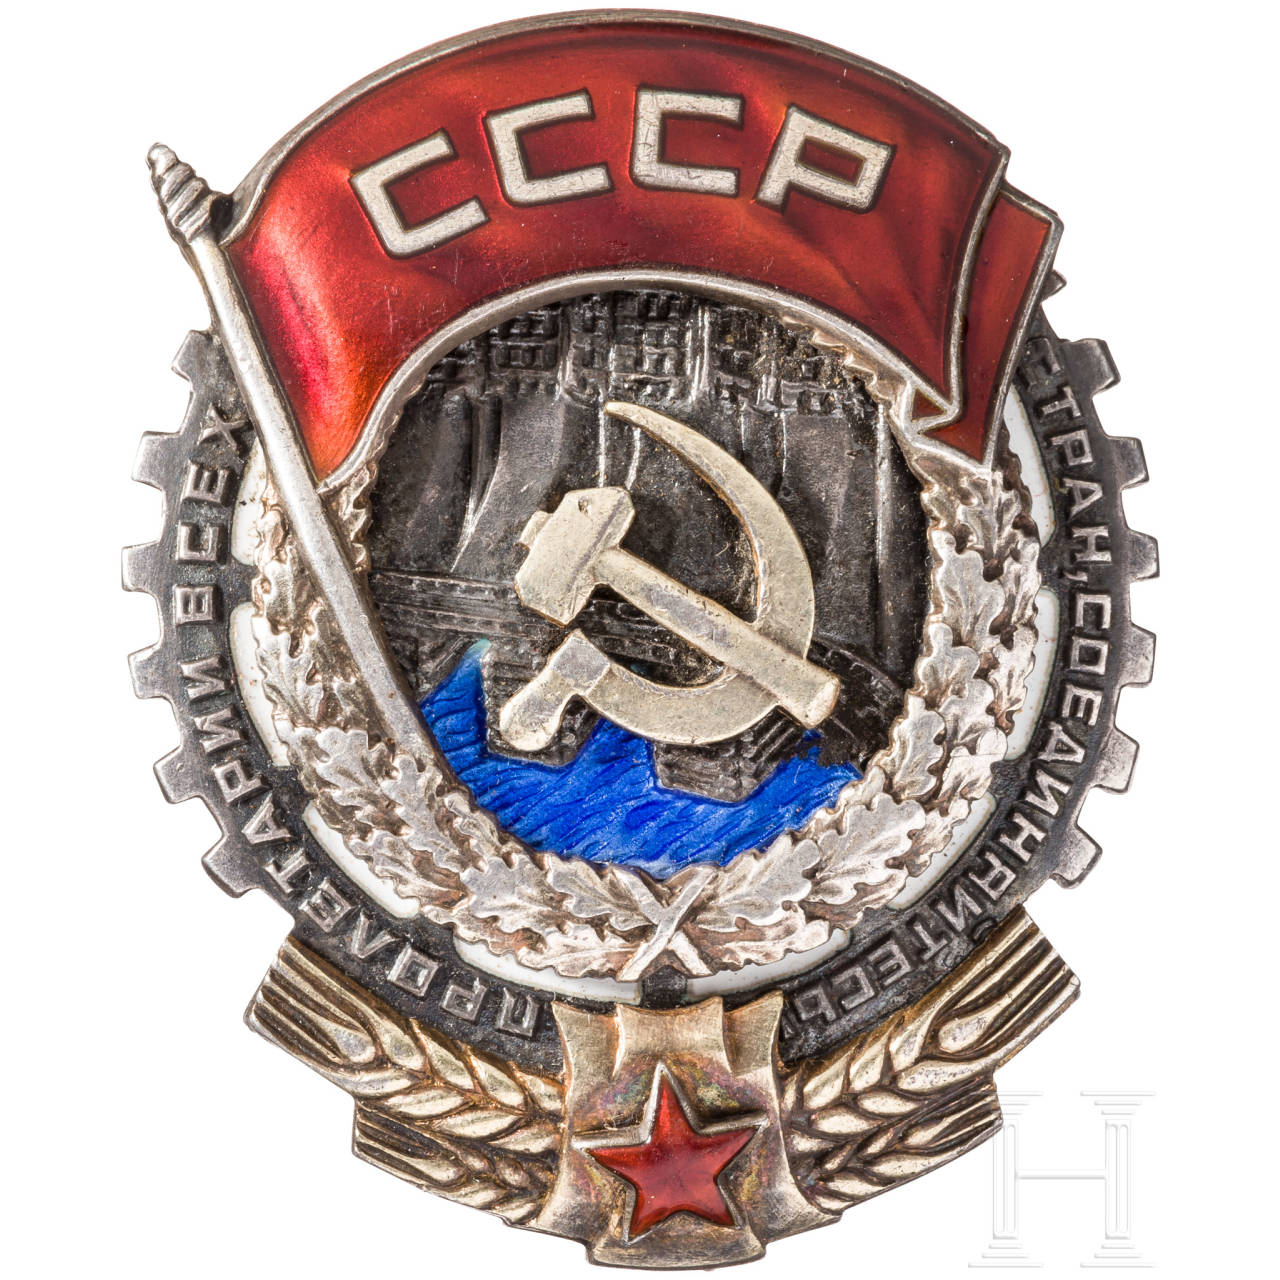 Order of the Red Banner, since 1936